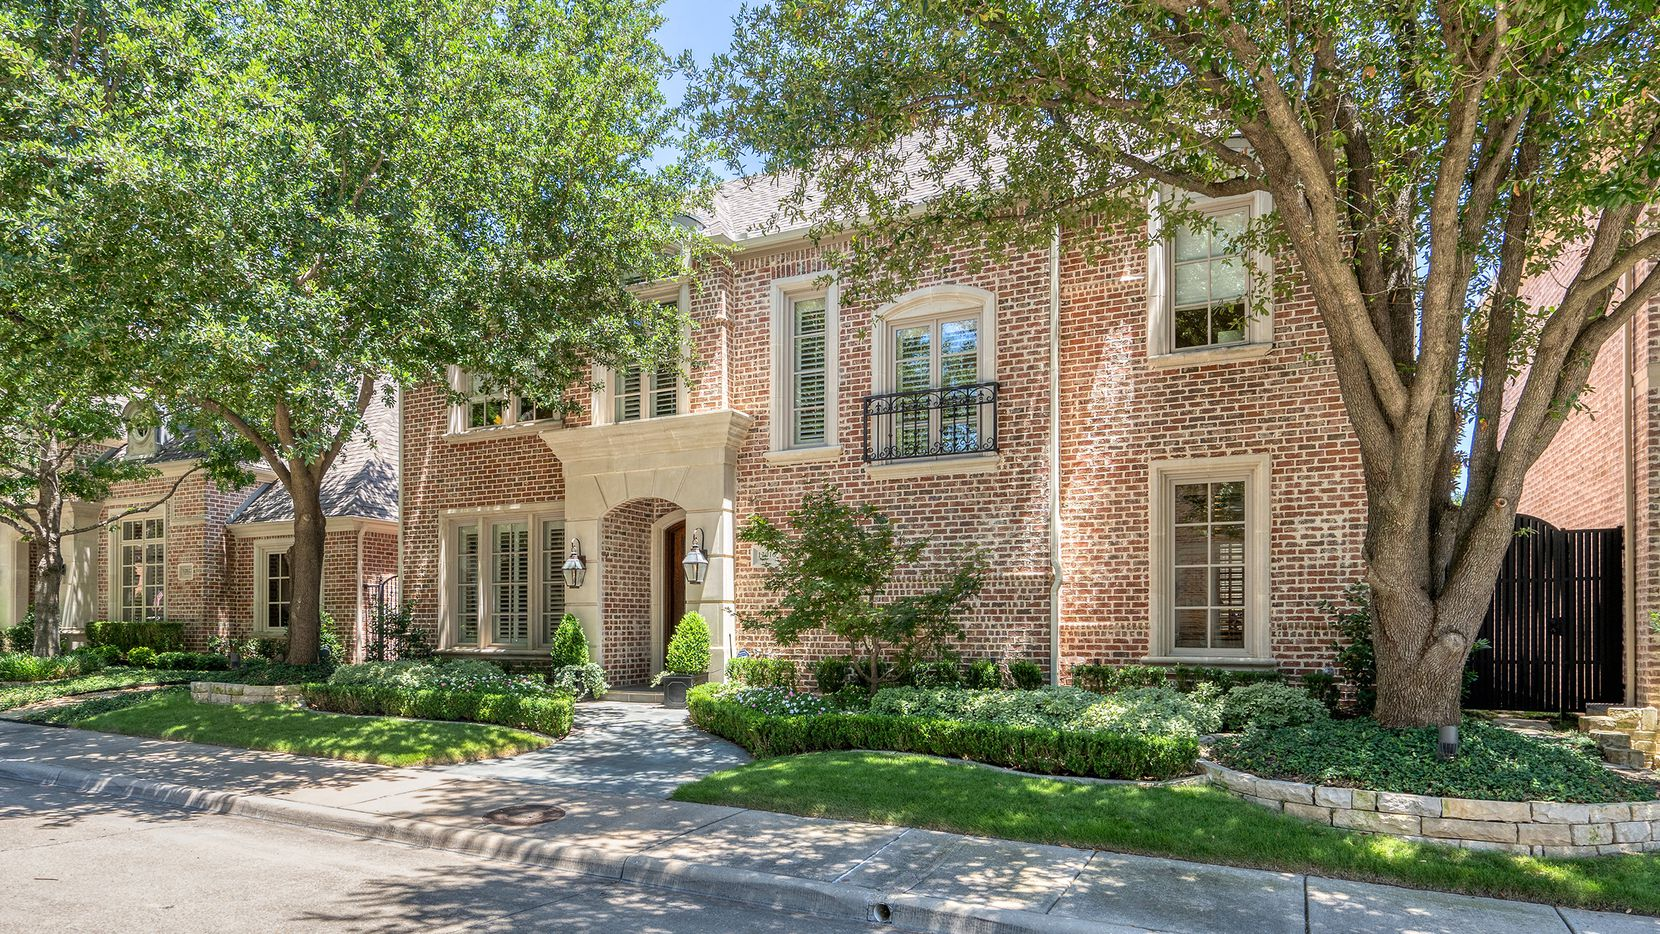 The 4,360-square-foot residence at 12016 Edgestone Road in Dallas' Lake Forest community has a Sonos sound system and a pool.